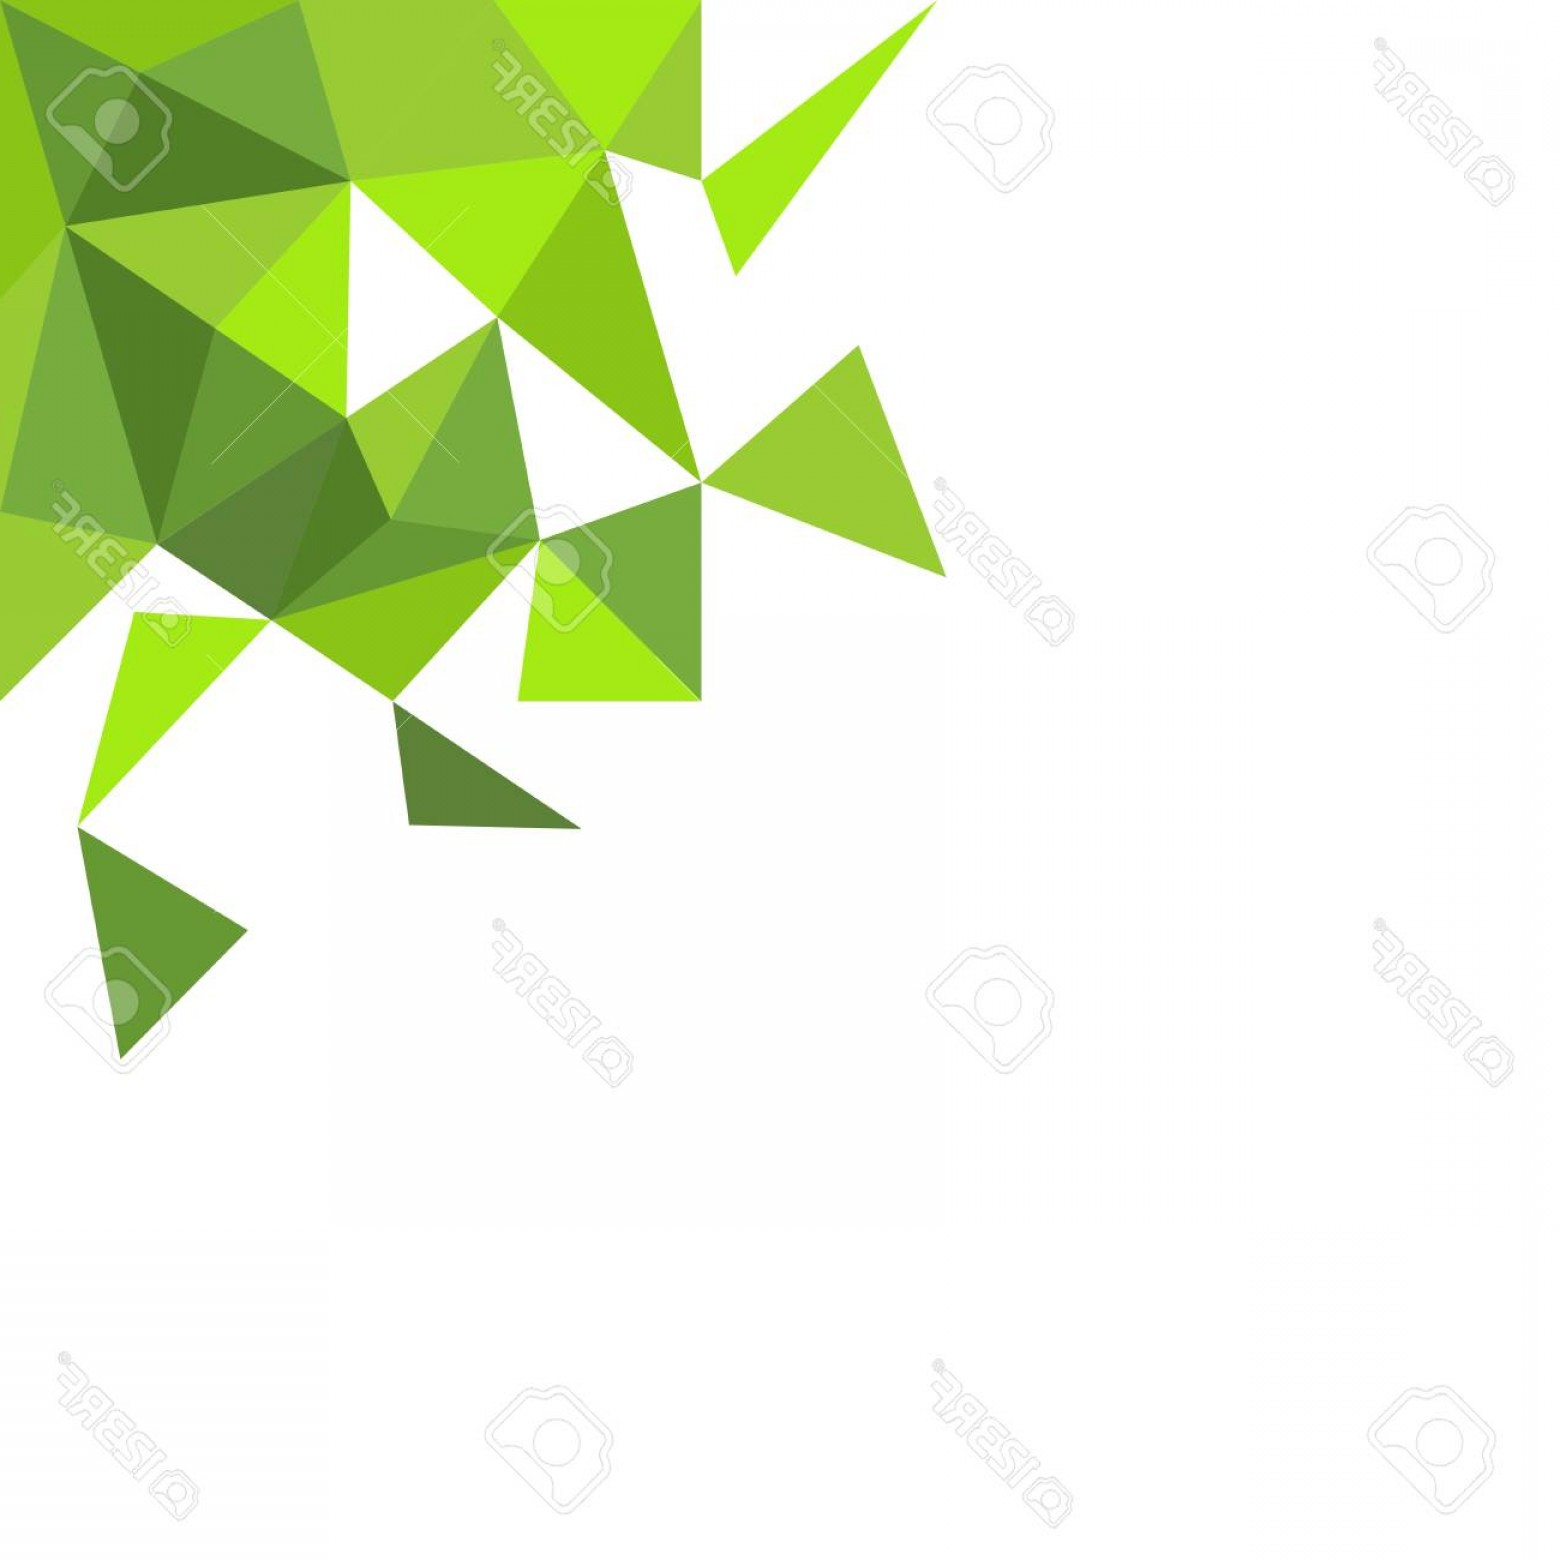 Green And White Vector: Photostock Vector Green Triangle On White Vector Background